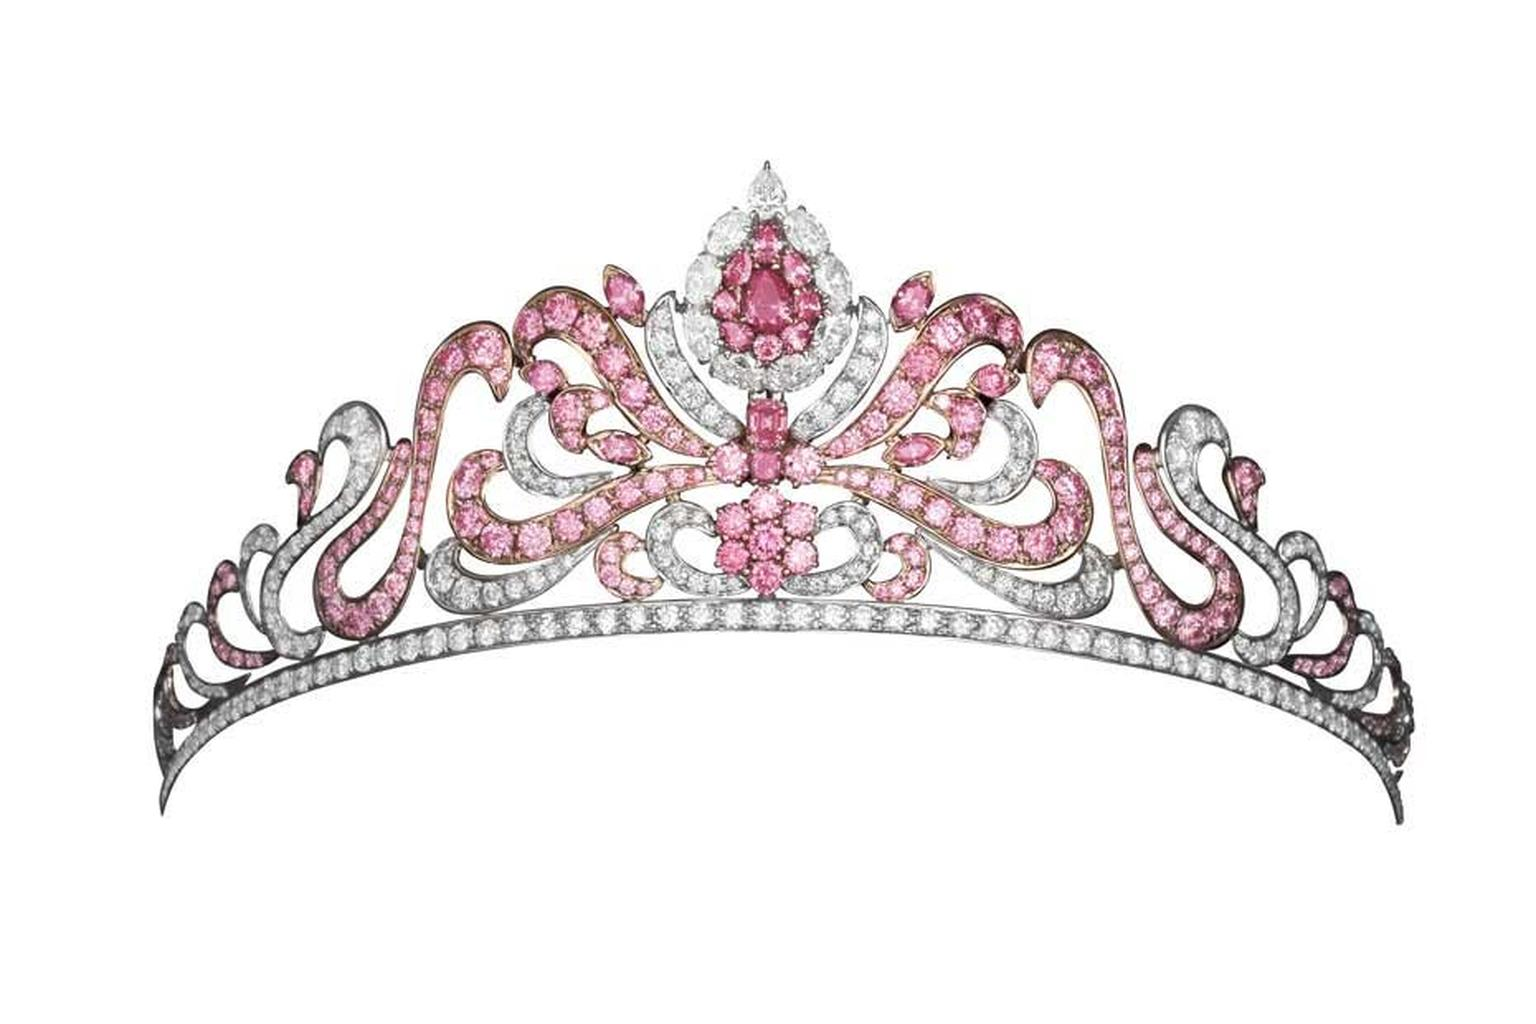 Pink Diamond tiara, created by Asprey jewellery and bought by Linneys for $2 million in 2012, is a truly unique piece set with 20.00cts of pink diamonds from the soon to be depleted Argyle mine in Australia.